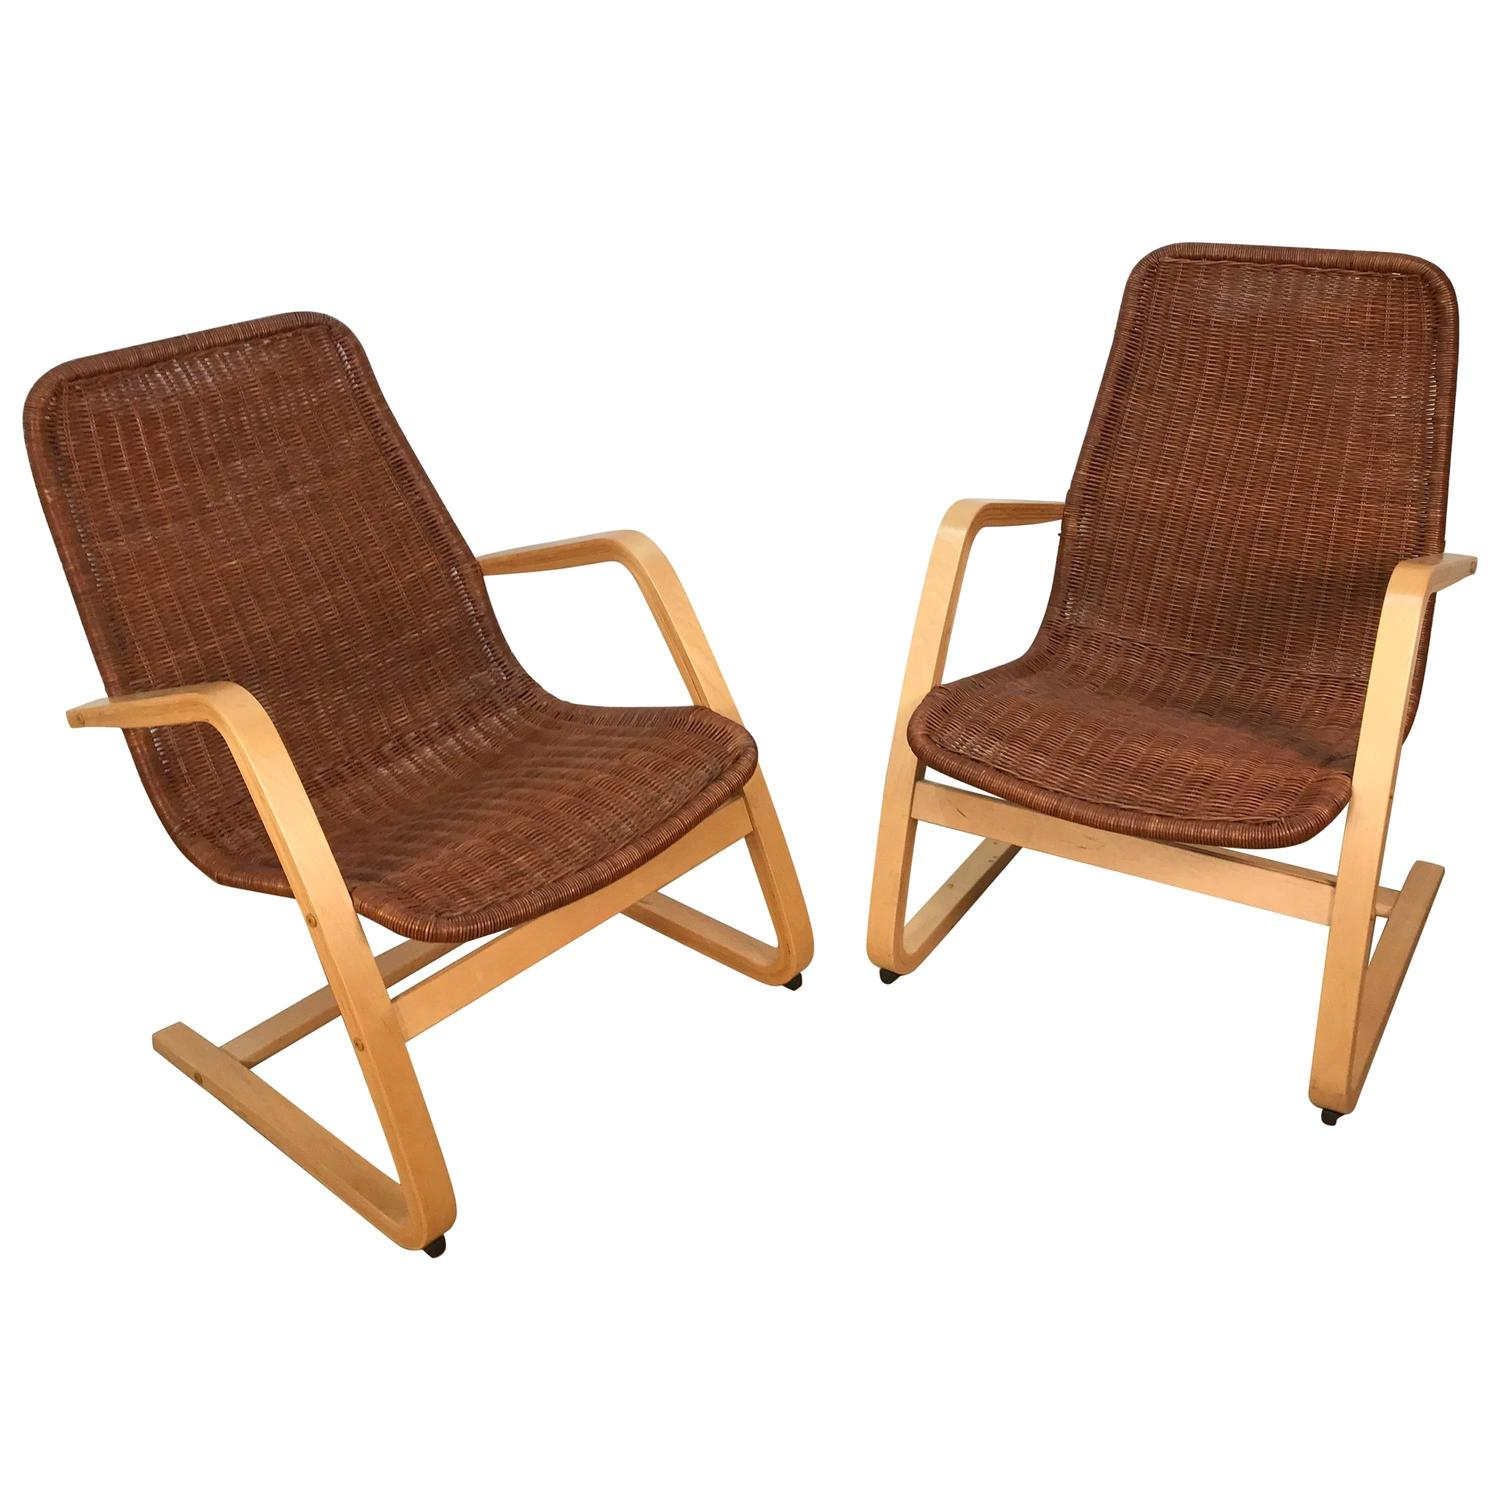 outdoor chair ausverkauf gartenmobel lounge of wicker beautiful rattan